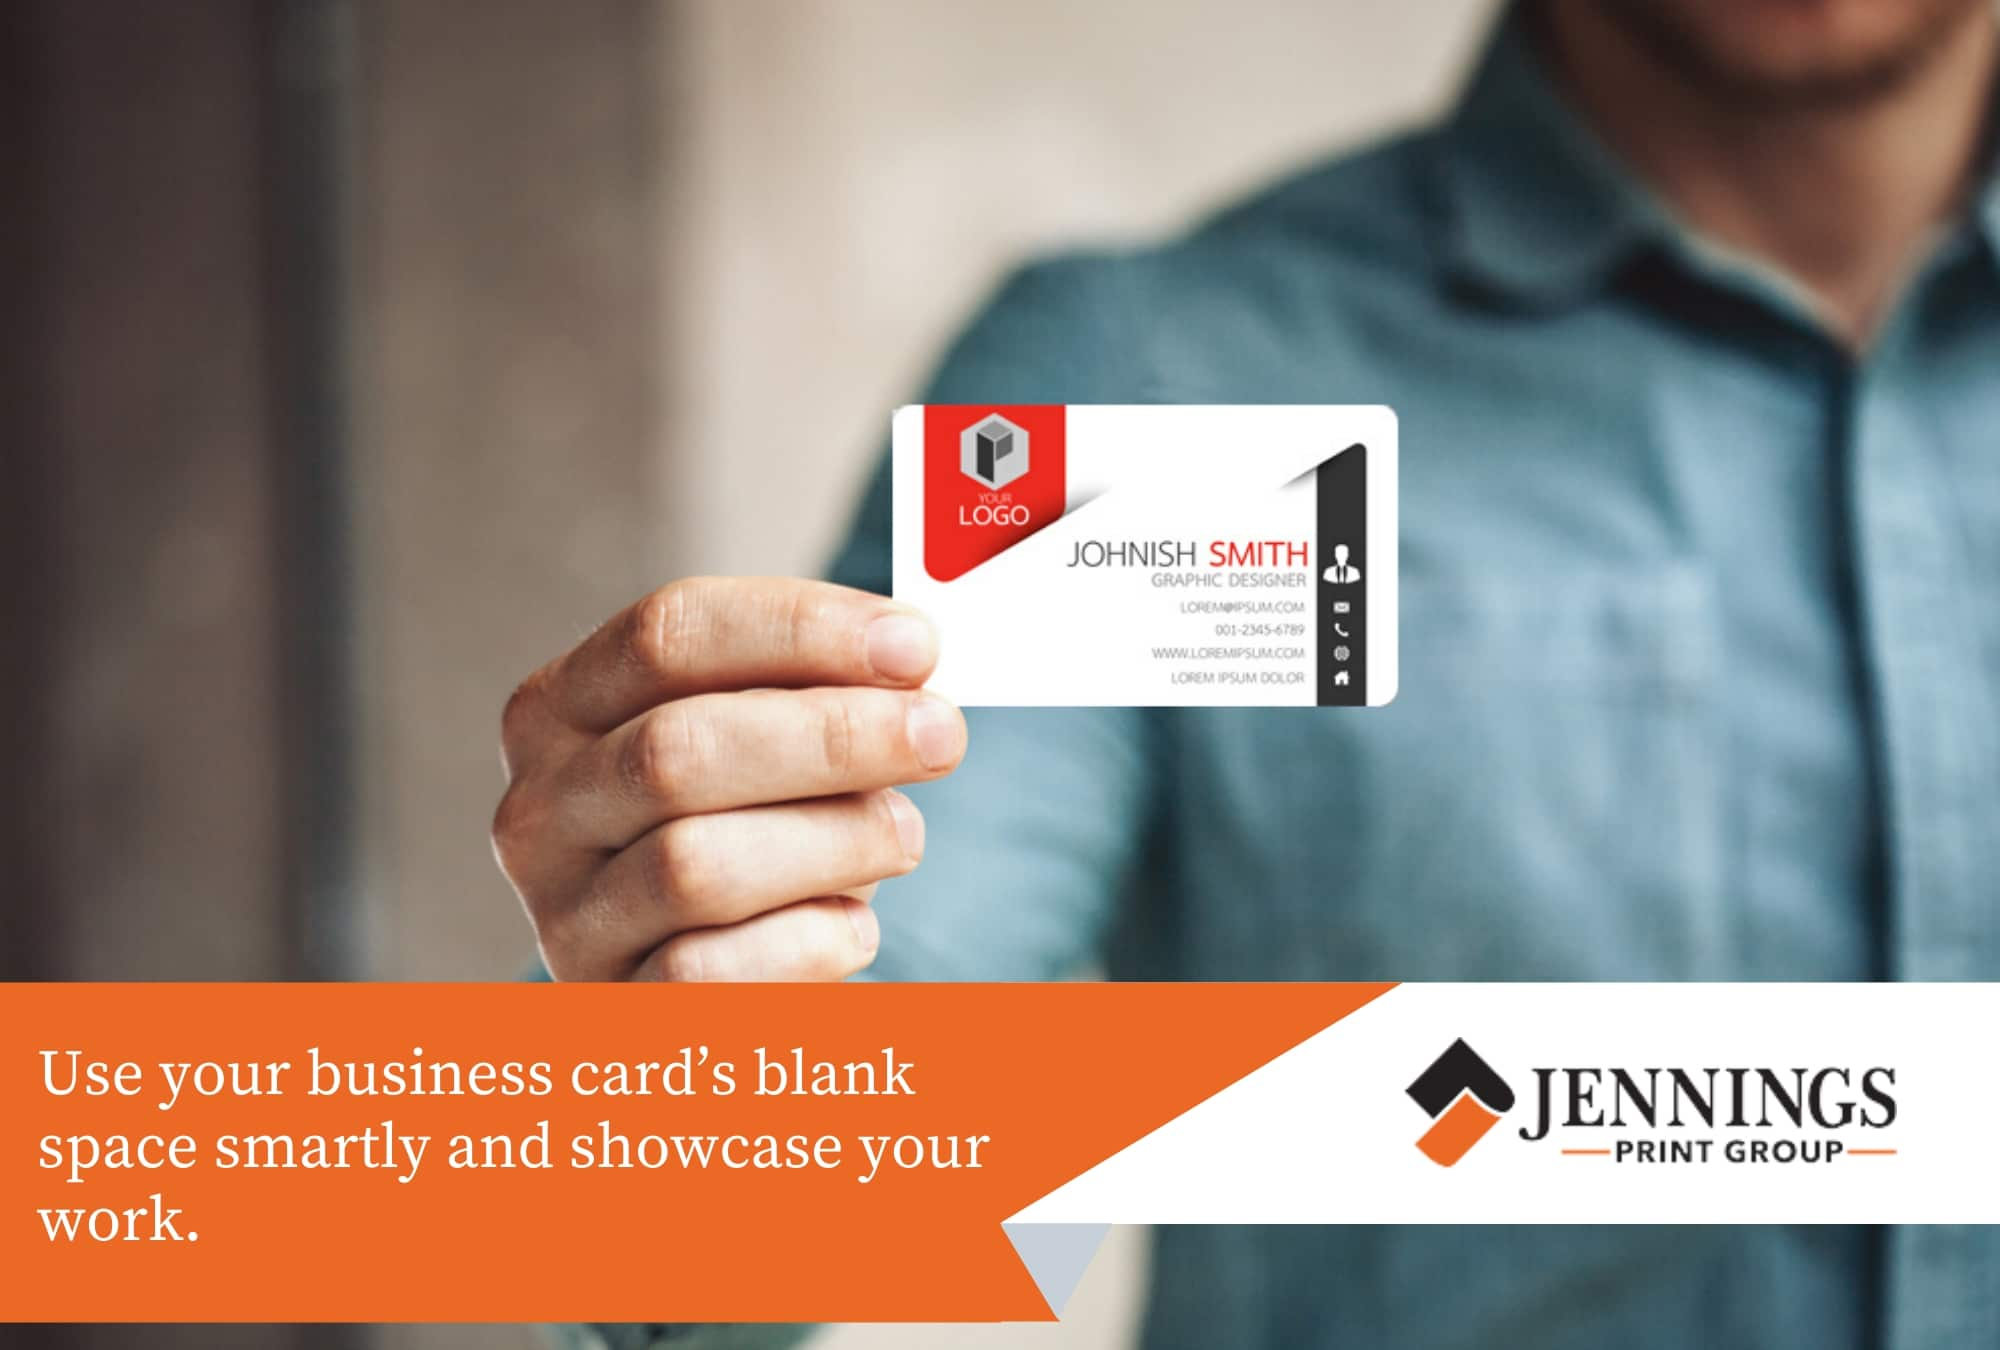 use your business card space smartly